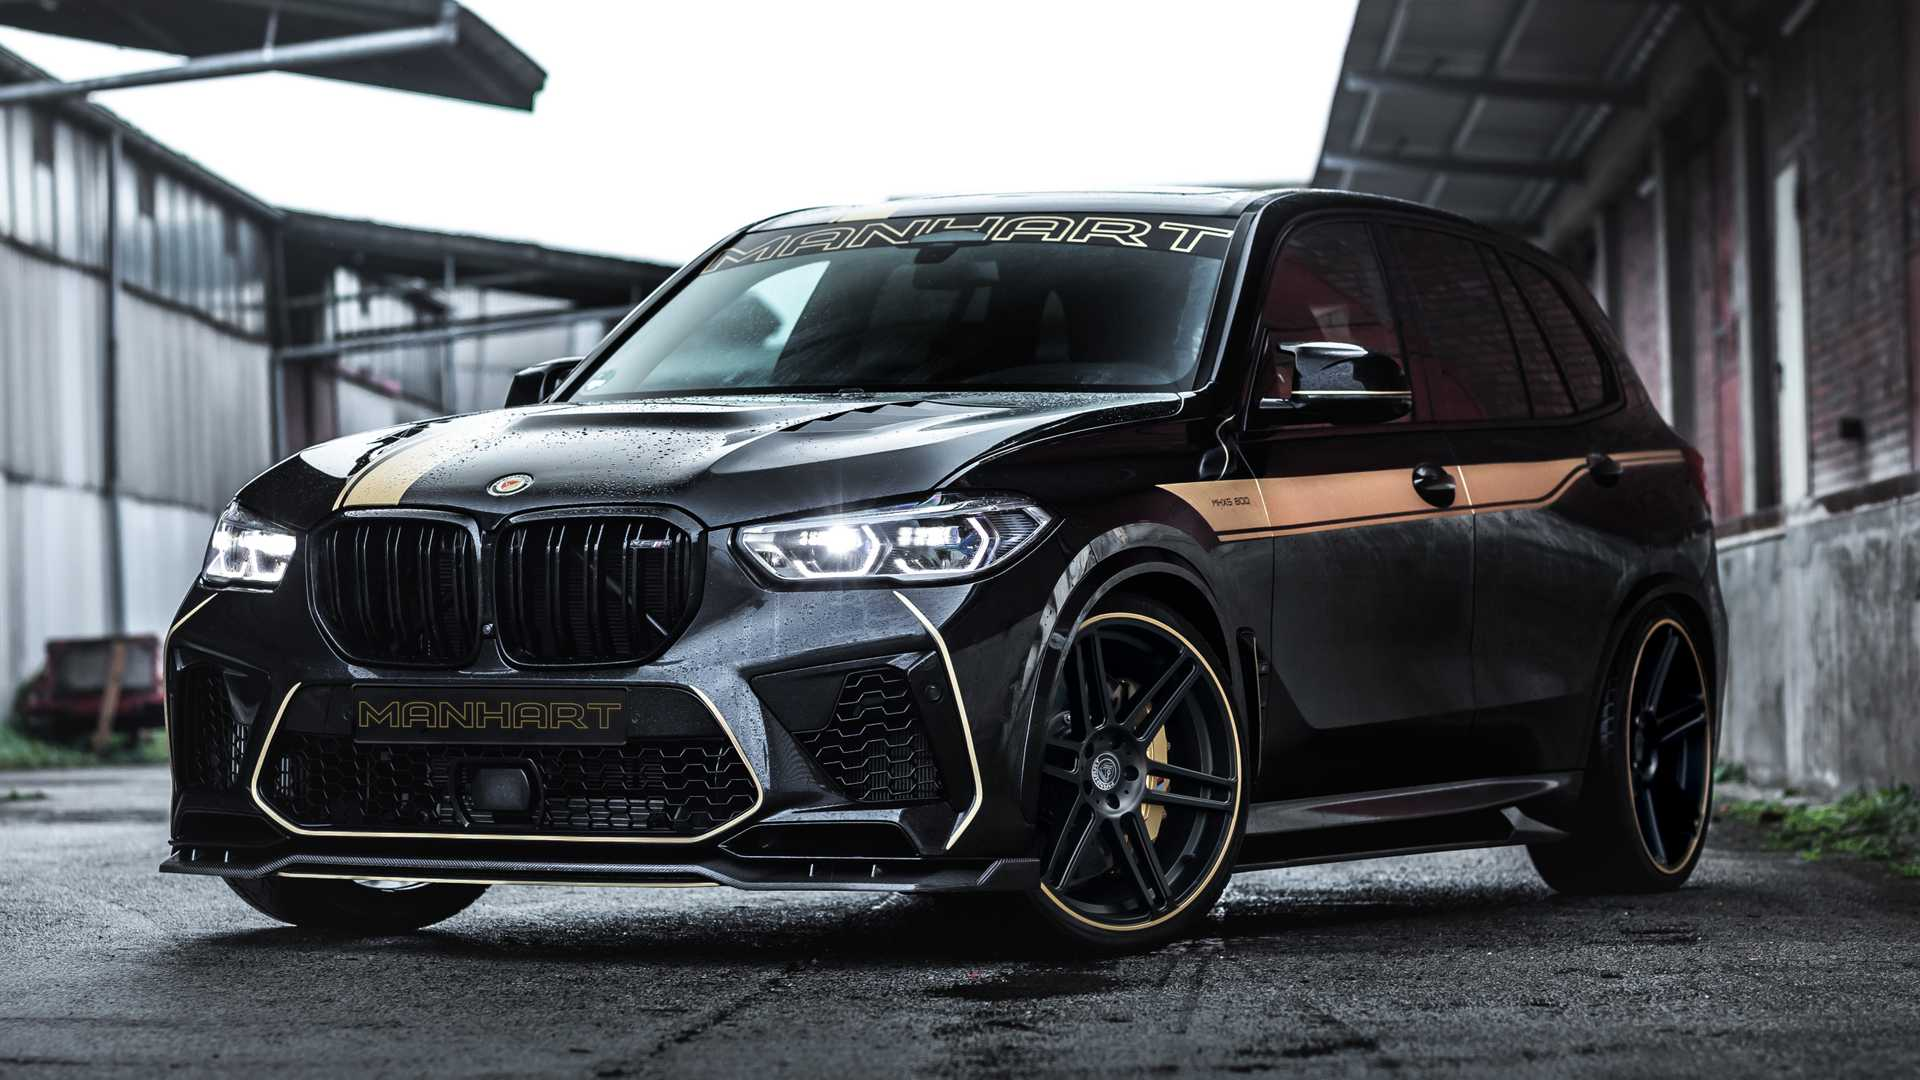 Manhart Goes For Gold With High Power Bmw X5 M Tuning